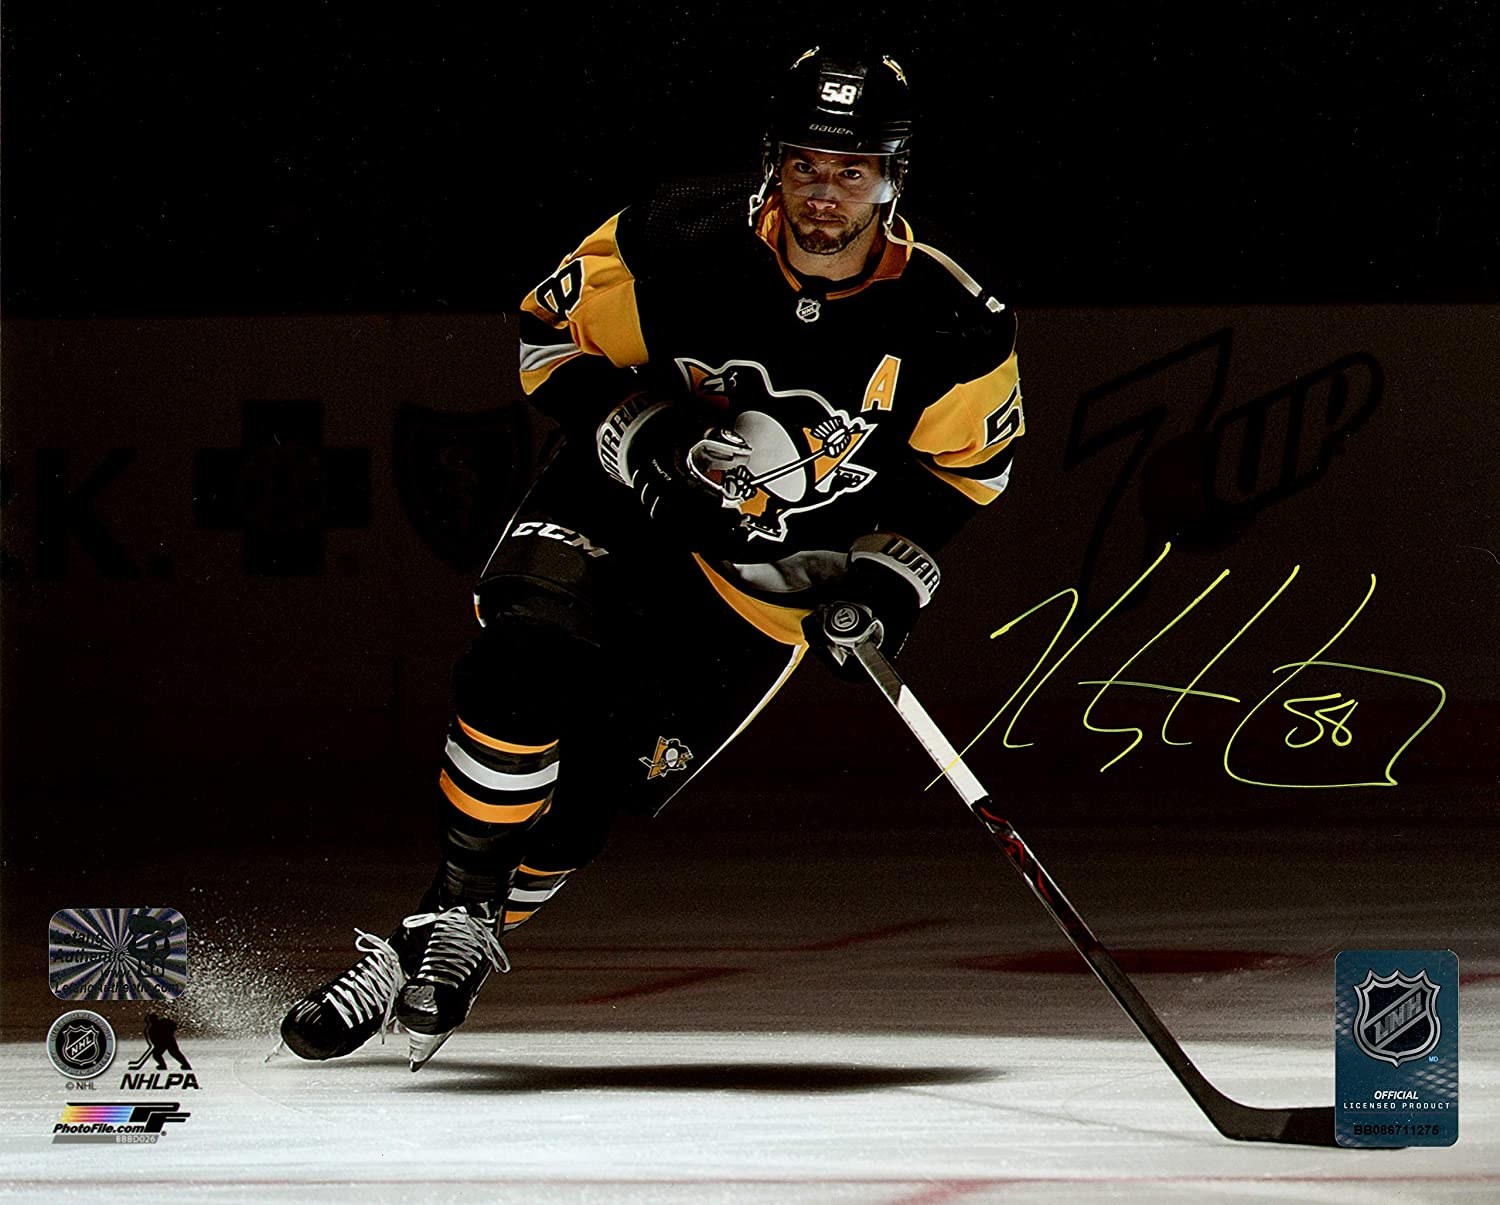 A Kris Letang Pittsburgh Penguins Signed Autographed Skate In Spotlight 8x10